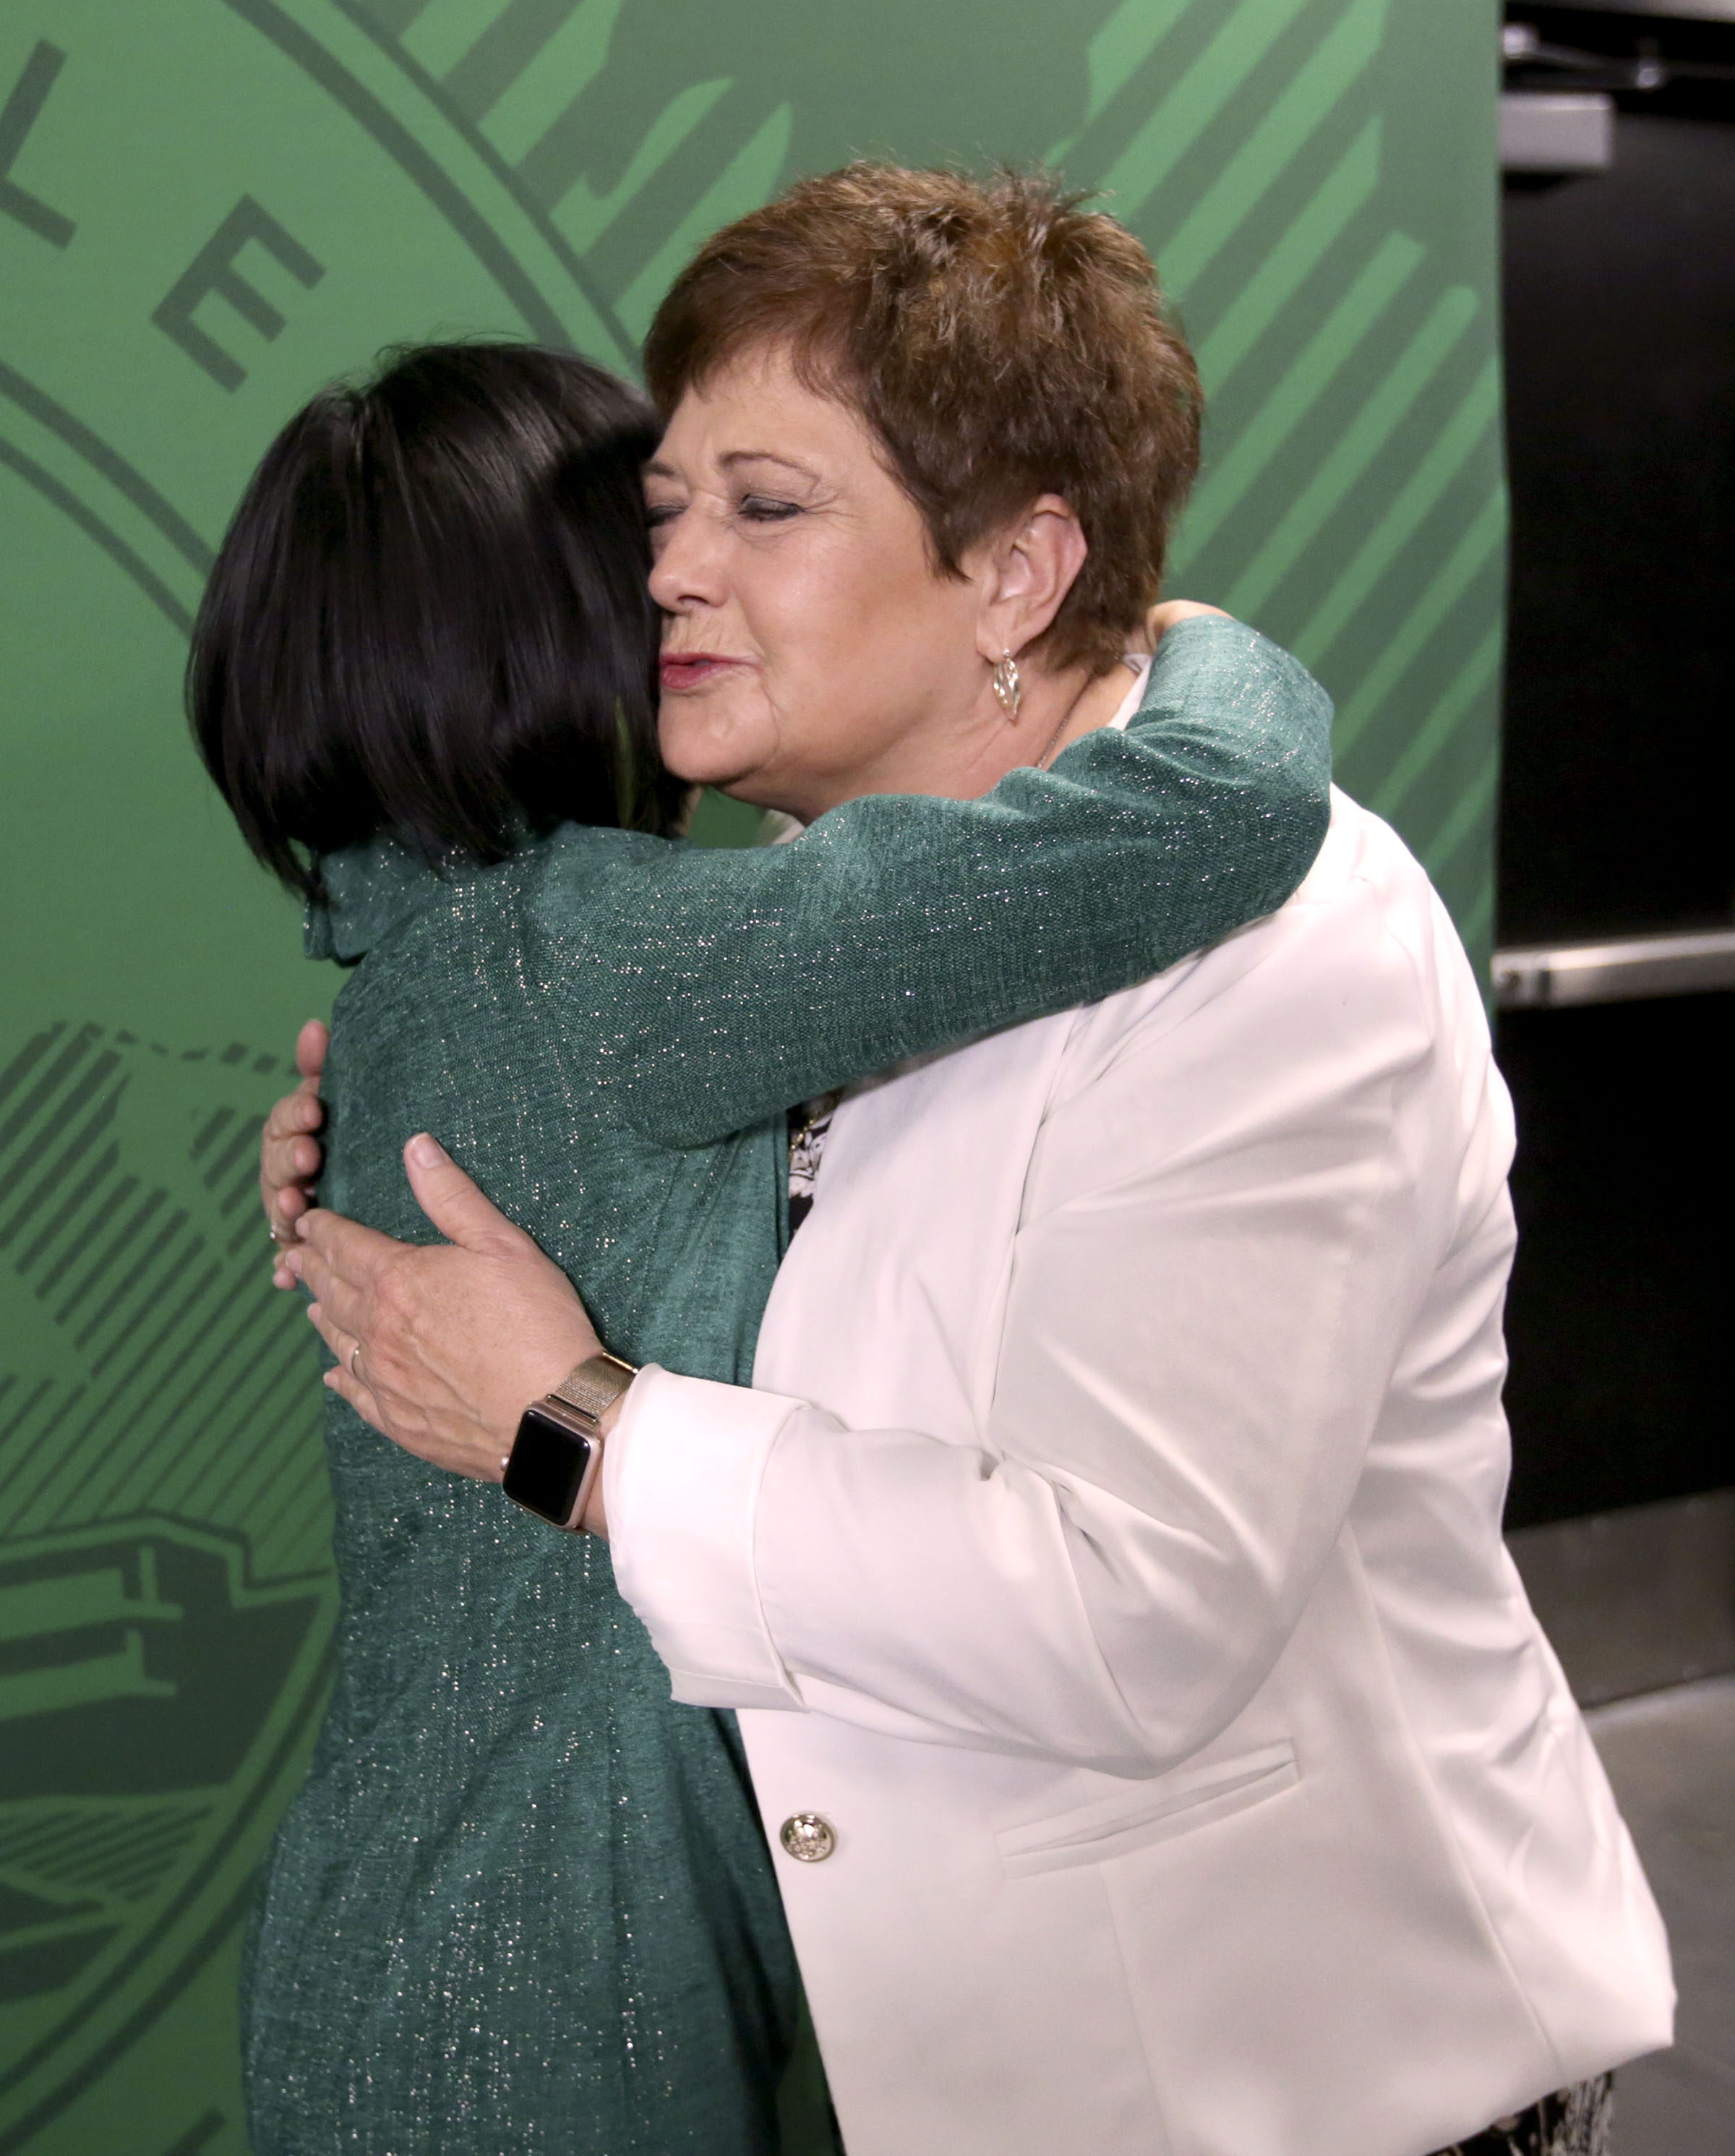 Astrid S. Tuminez, Utah Valley University's seventh president, hugs Utah First Lady Jeanette Herbert after Tuminez's inauguration ceremony at the UVU Noorda Center for the Performing Arts in Orem on Wednesday, March 27, 2019.